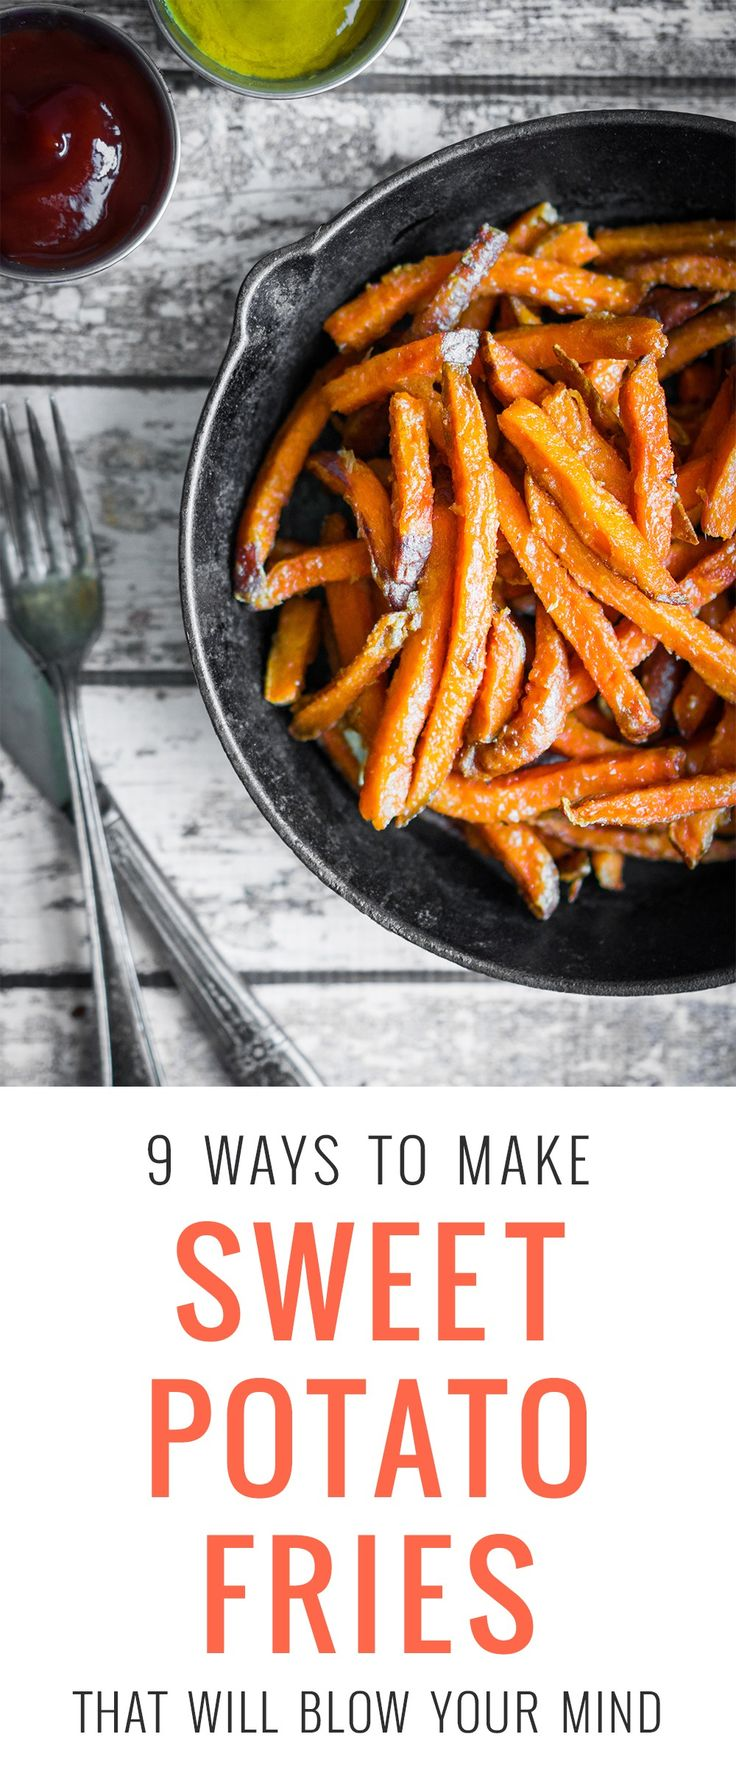 When you swap out white potatoes for sweet potatoes, you add a lot of nutritional value, and if you roast them instead of frying, they're even healthier. Sweet potatoes are full of beta carotene, B vitamins, potassium, fiber and phosphorous. For these recipes I use white, garnet and purple varieties.